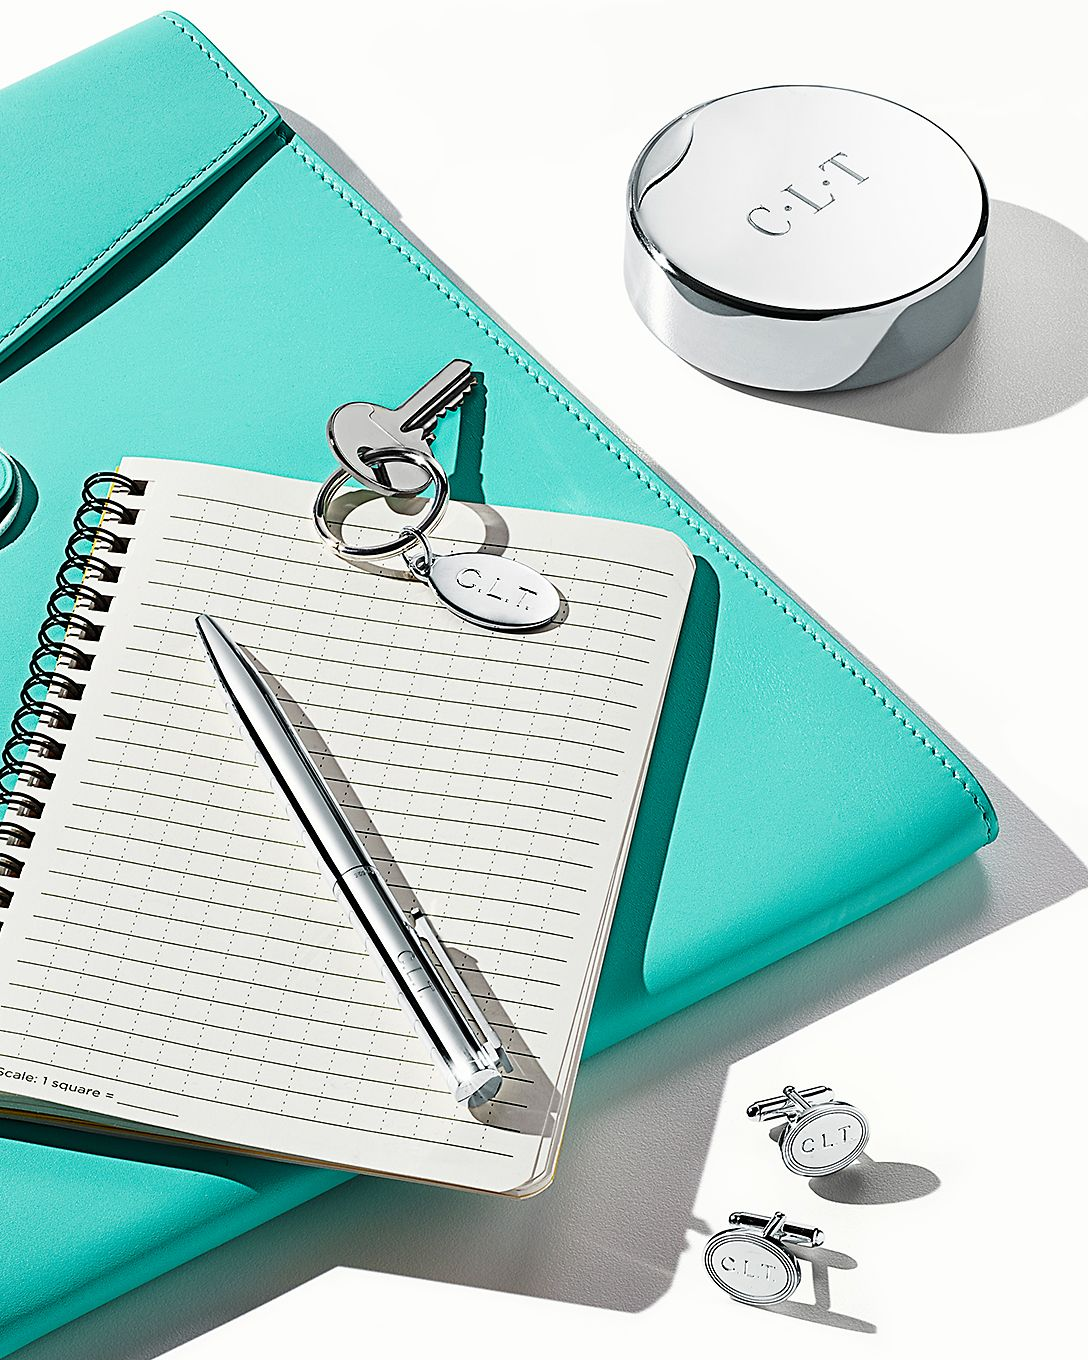 Tiffany & Co. Business Accounts